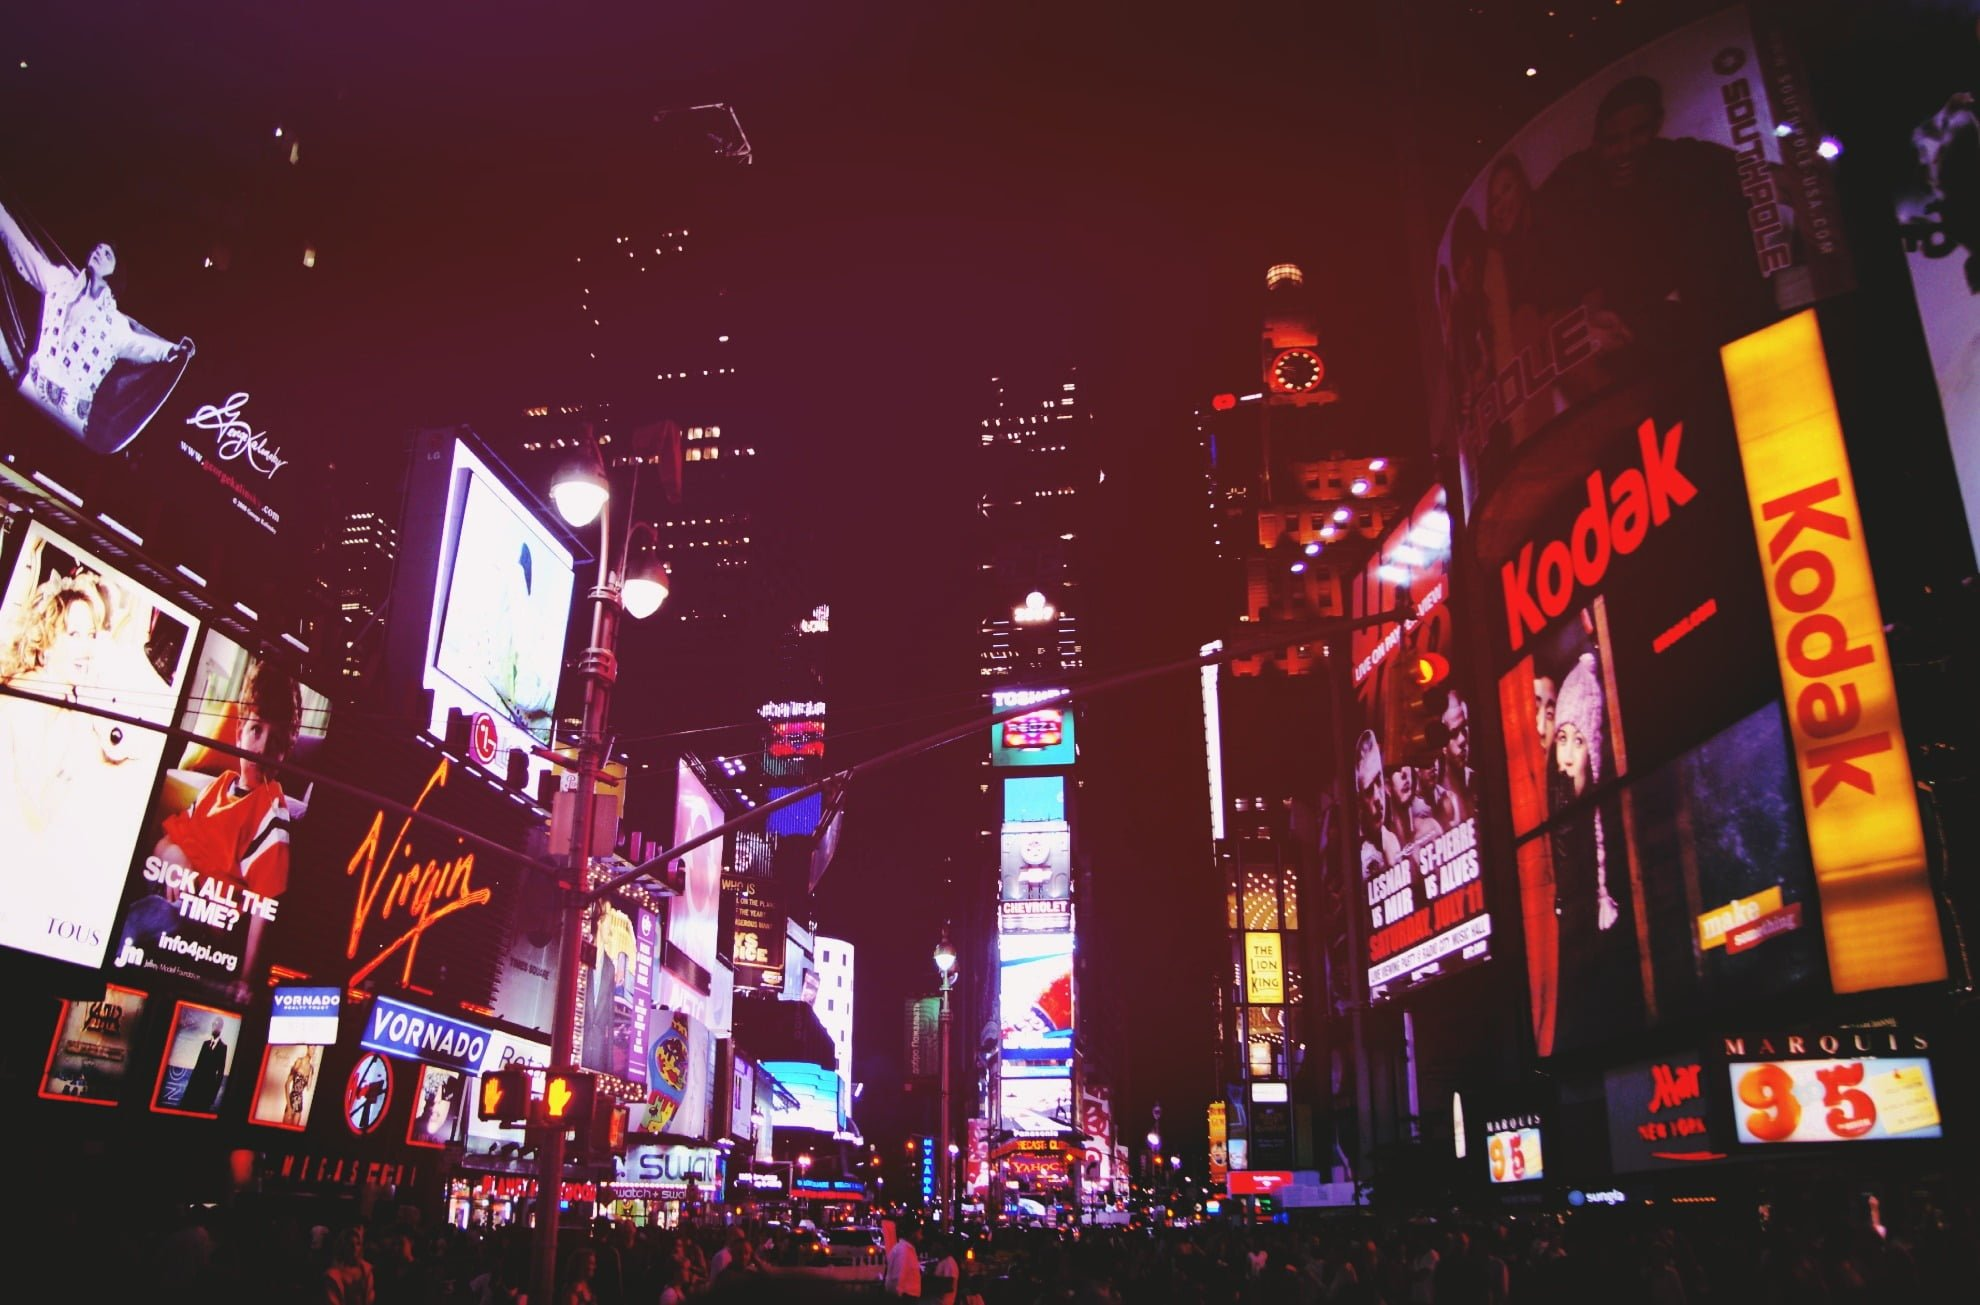 What do you understand about International Advertising - ilearnlot